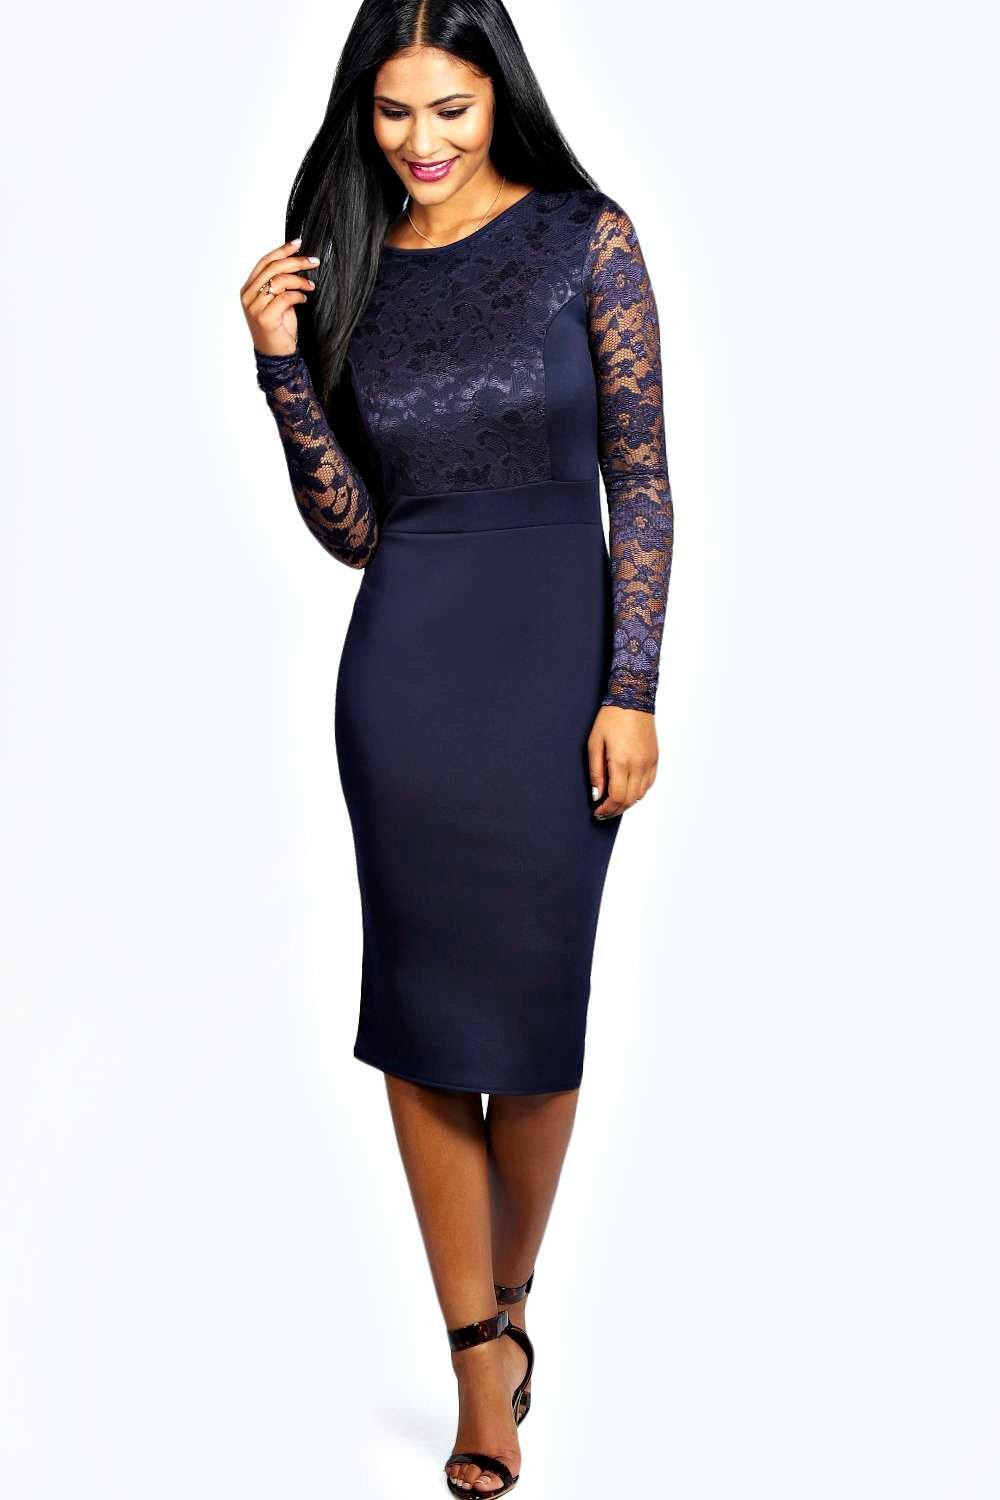 Lace bodycon dress with sleeves